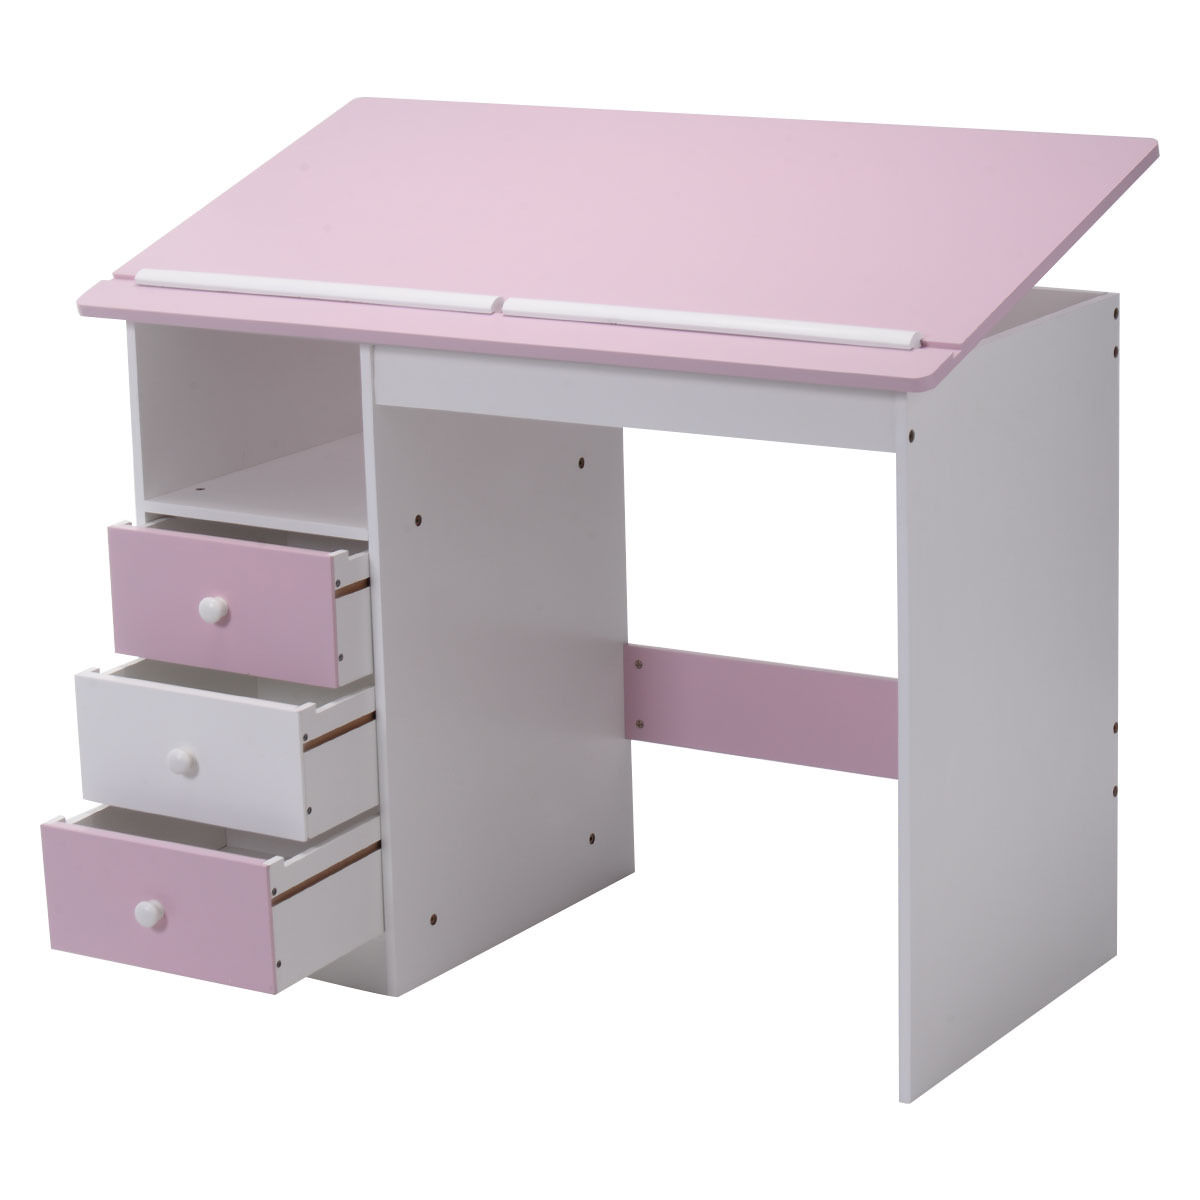 Workstation Furniture Us 109 99 Giantex Adjustable Top Drawing Desk Modern Drafting Table Pink Workstation Furniture With Drawers Hw52647 In Laptop Desks From Furniture